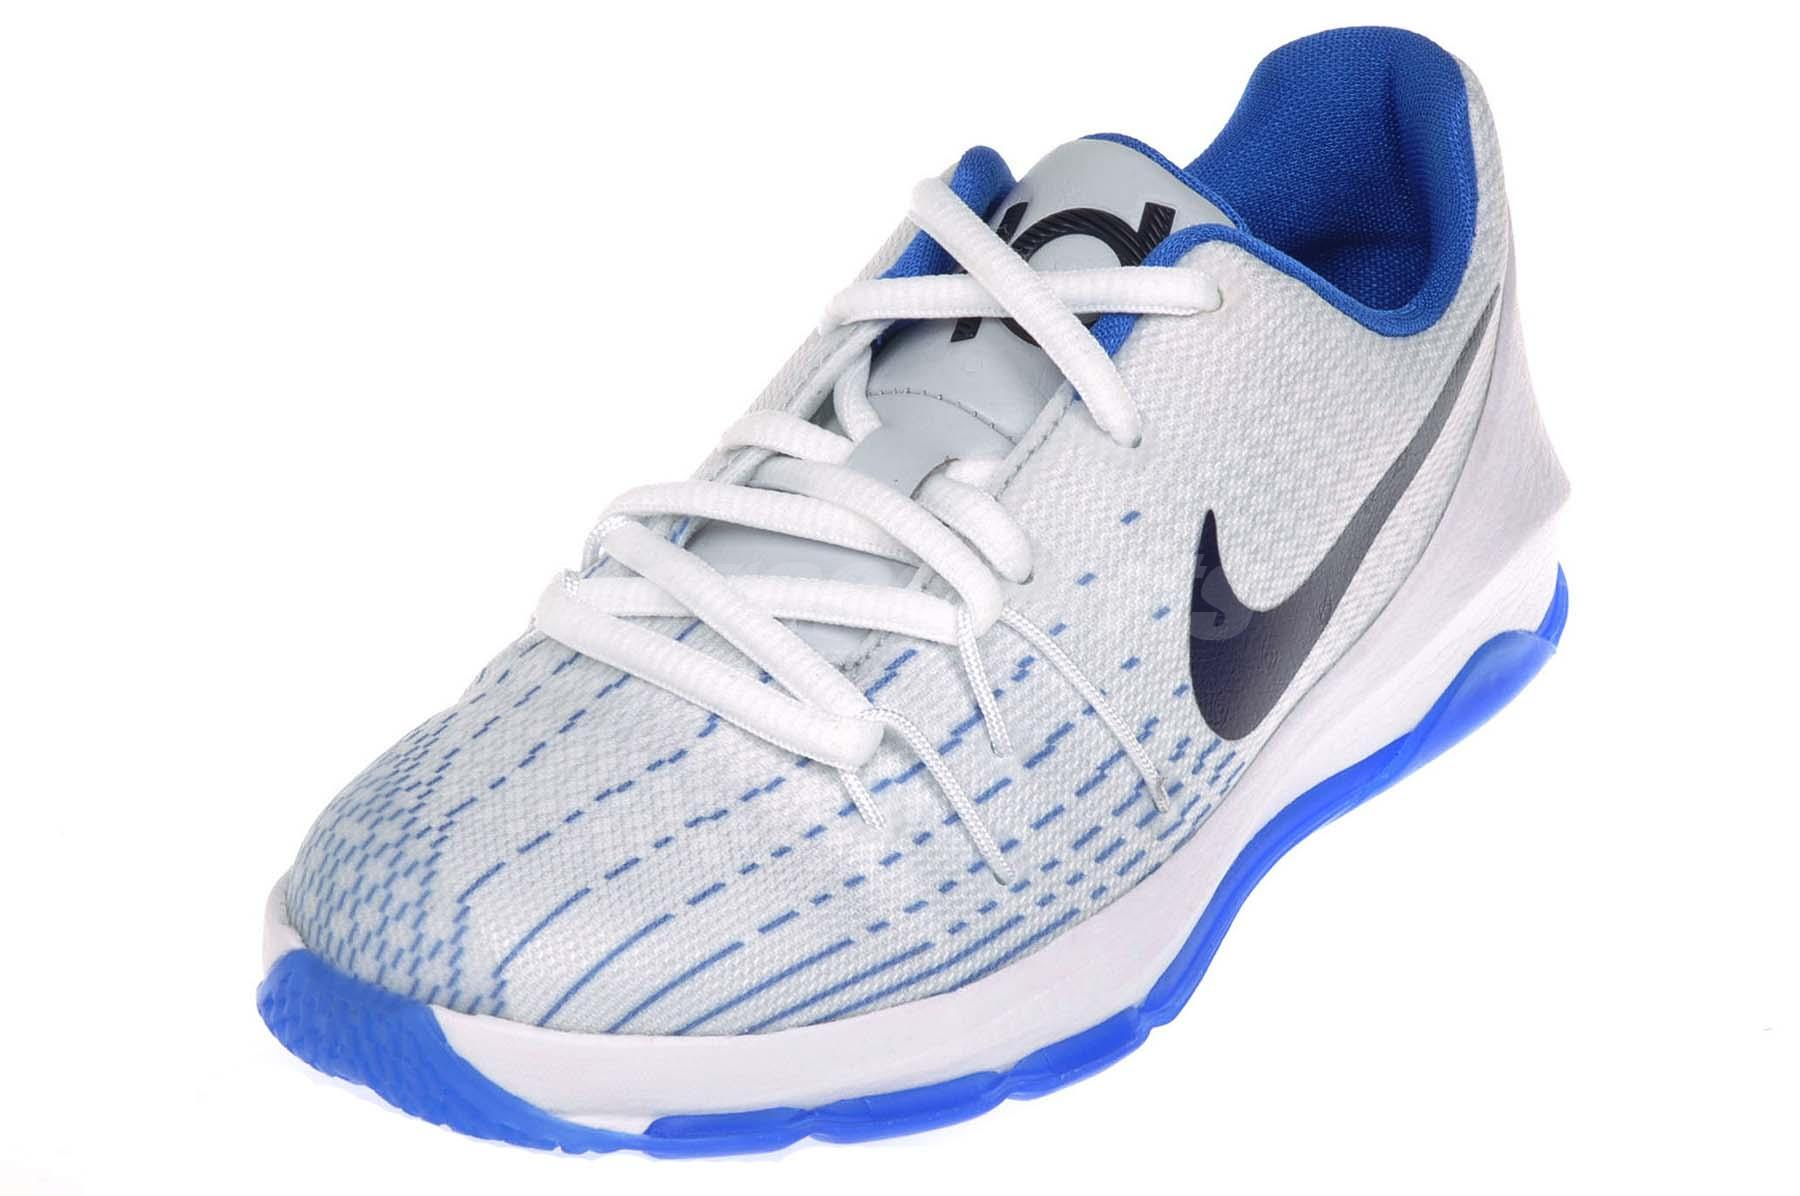 nike kd 8 ps basketball shoes preschool boys girls kids